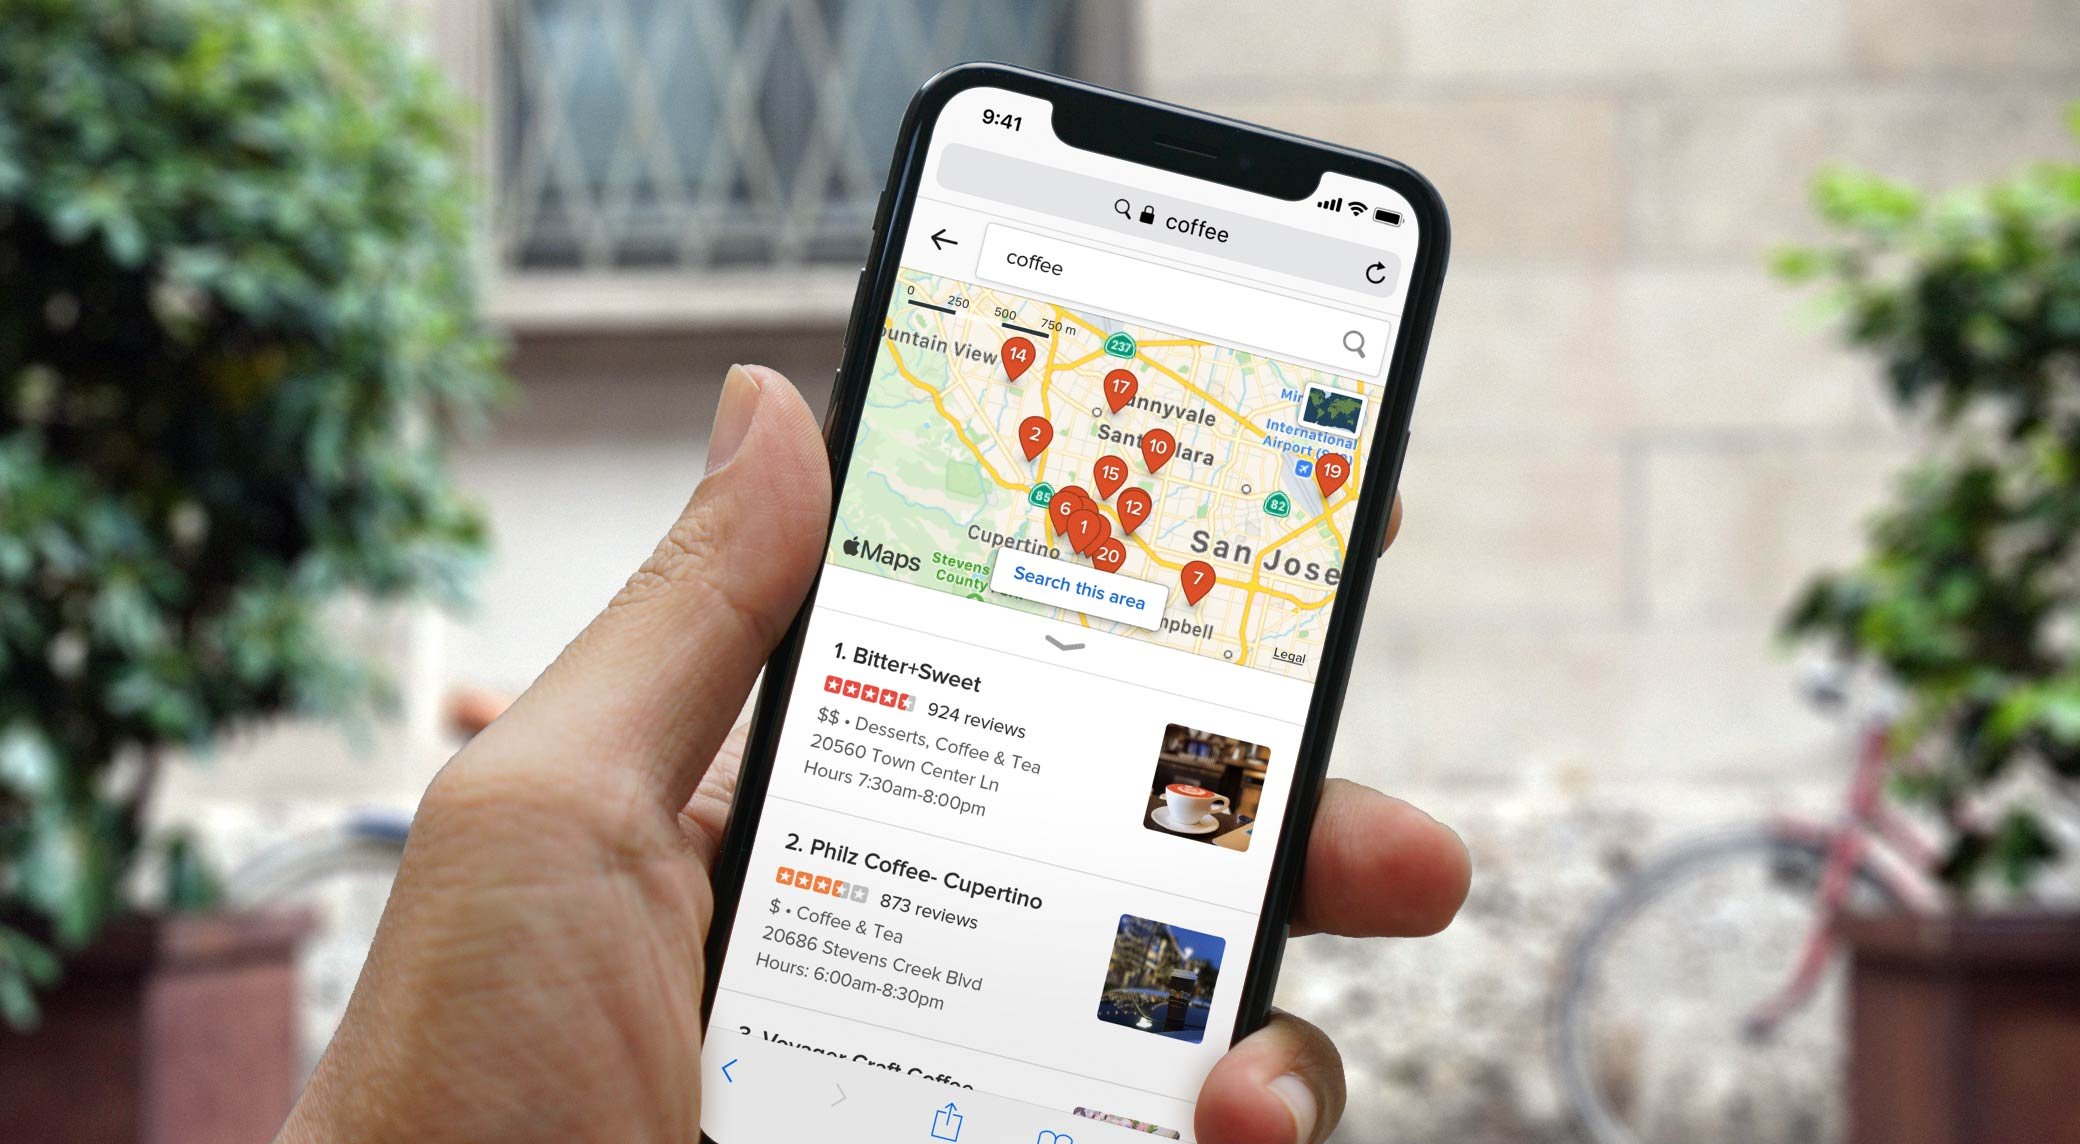 DuckDuckGo Expands Use of Apple Maps for Enhanced Search With the Same Commitment to Privacy